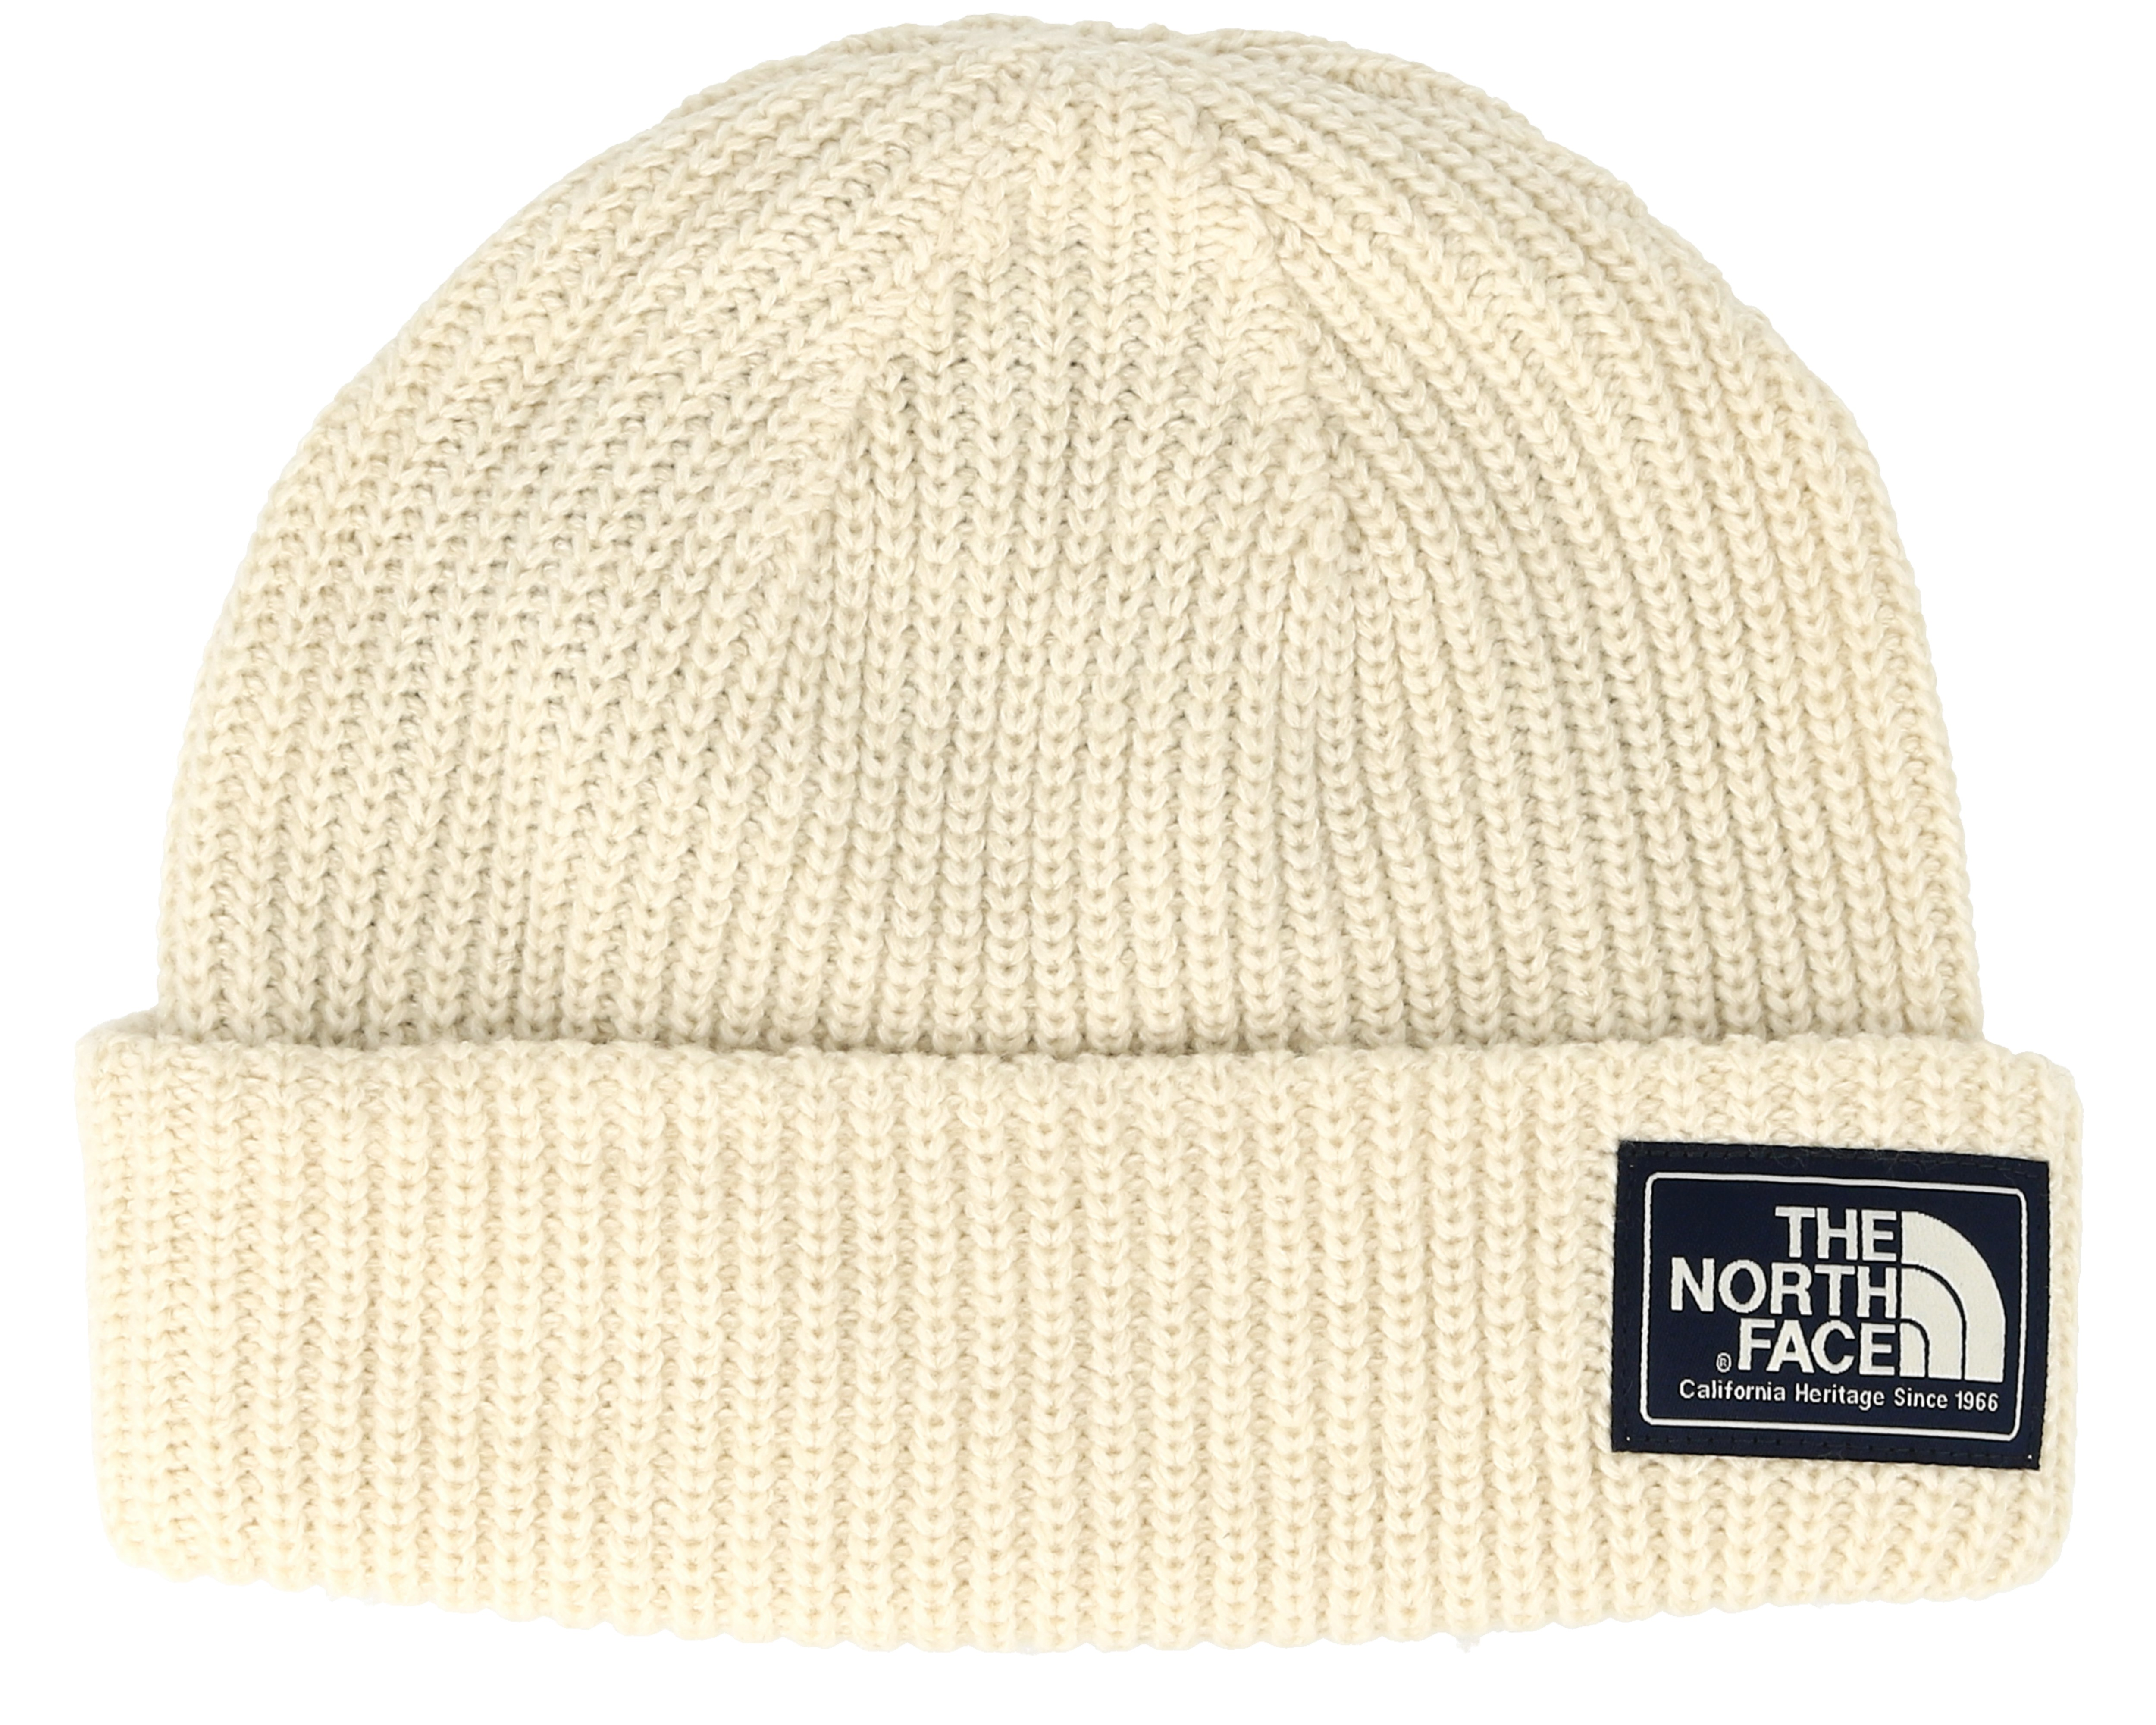 d9977133c8a066 Salty Dog Vintage White - The North Face beanies - Hatstoreworld.com